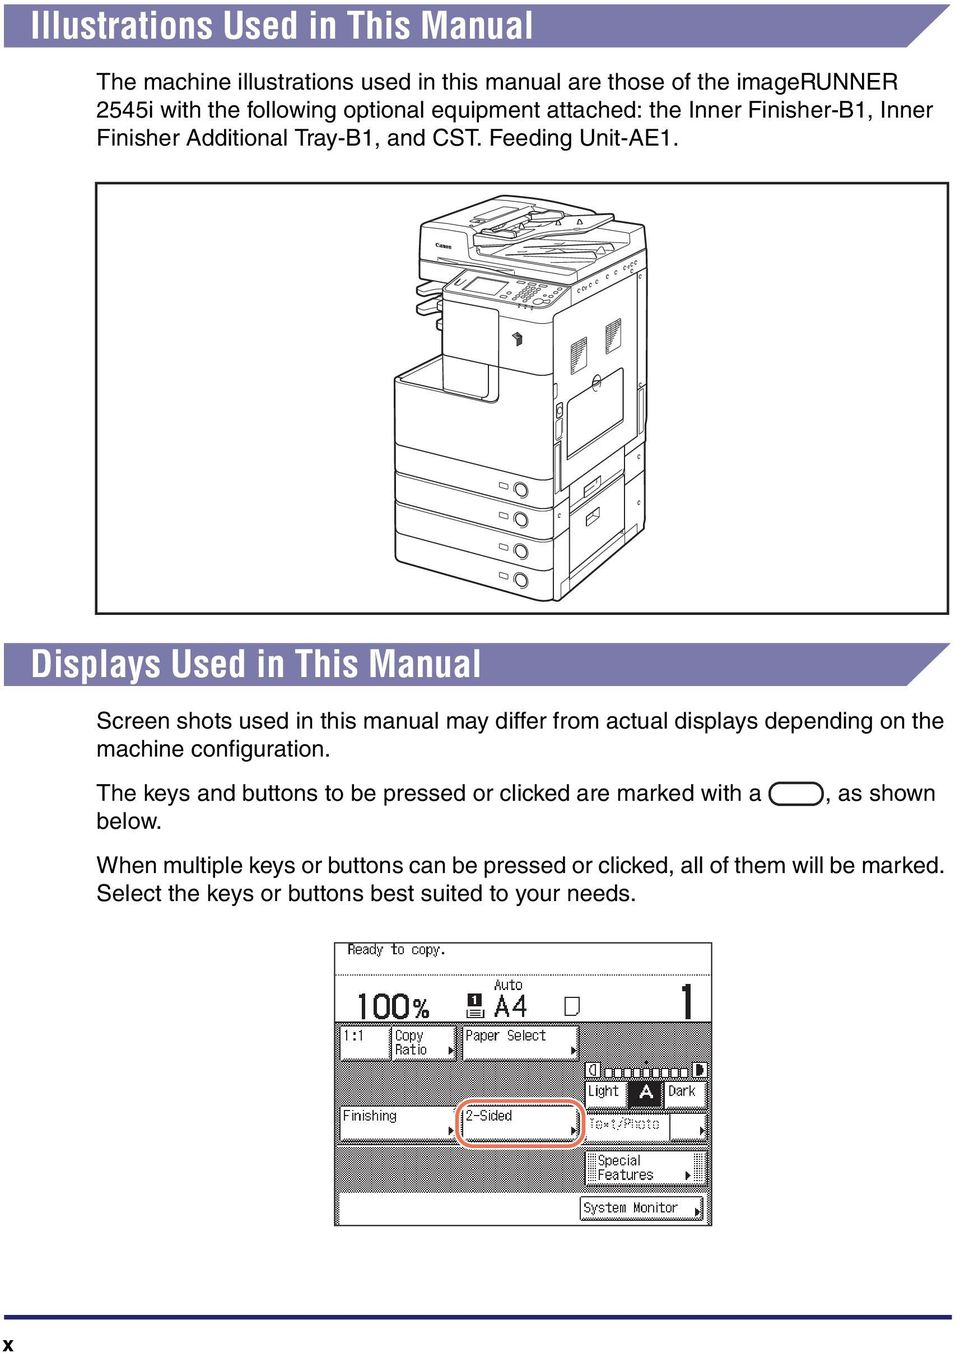 Displays Used in This Manual Screen shots used in this manual may differ from actual displays depending on the machine configuration.